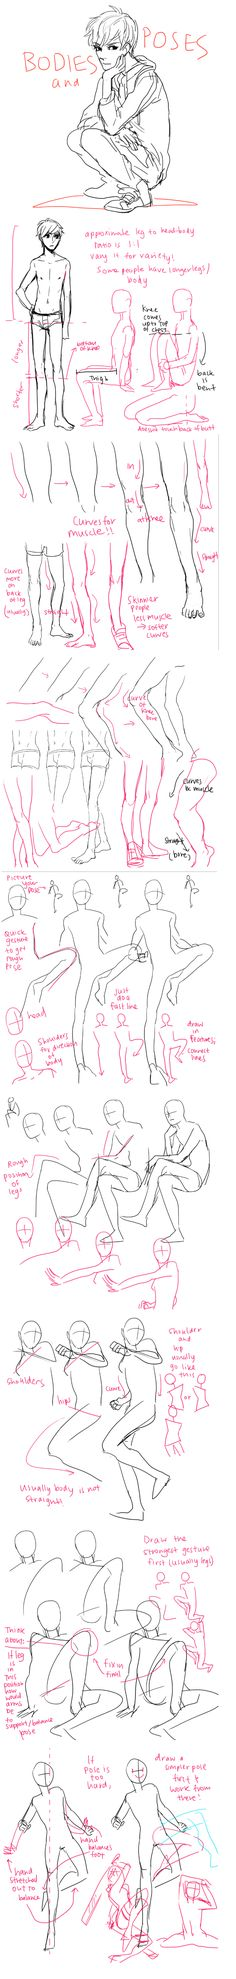 New Drawing Body Tutorial Sketches Pose Reference Ideas Drawing Body Poses, Drawing Reference Poses, Body Reference, Anatomy Reference, Design Reference, Art Reference, Drawing Tutorials, Drawing Tips, Art Tutorials